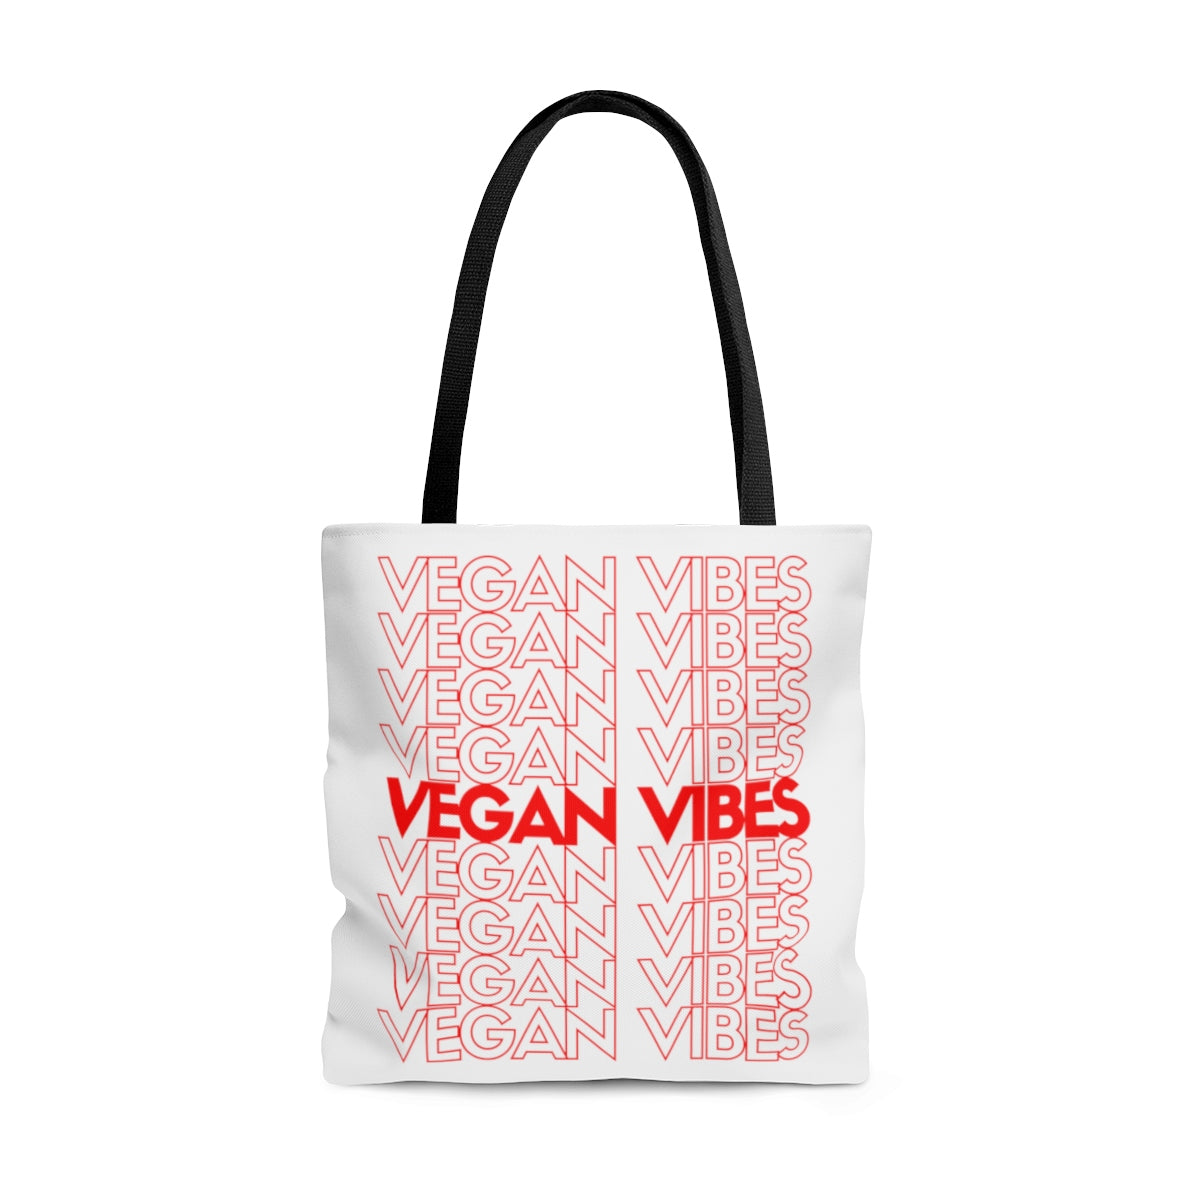 Vegan Vibes Reusable Tote Bag